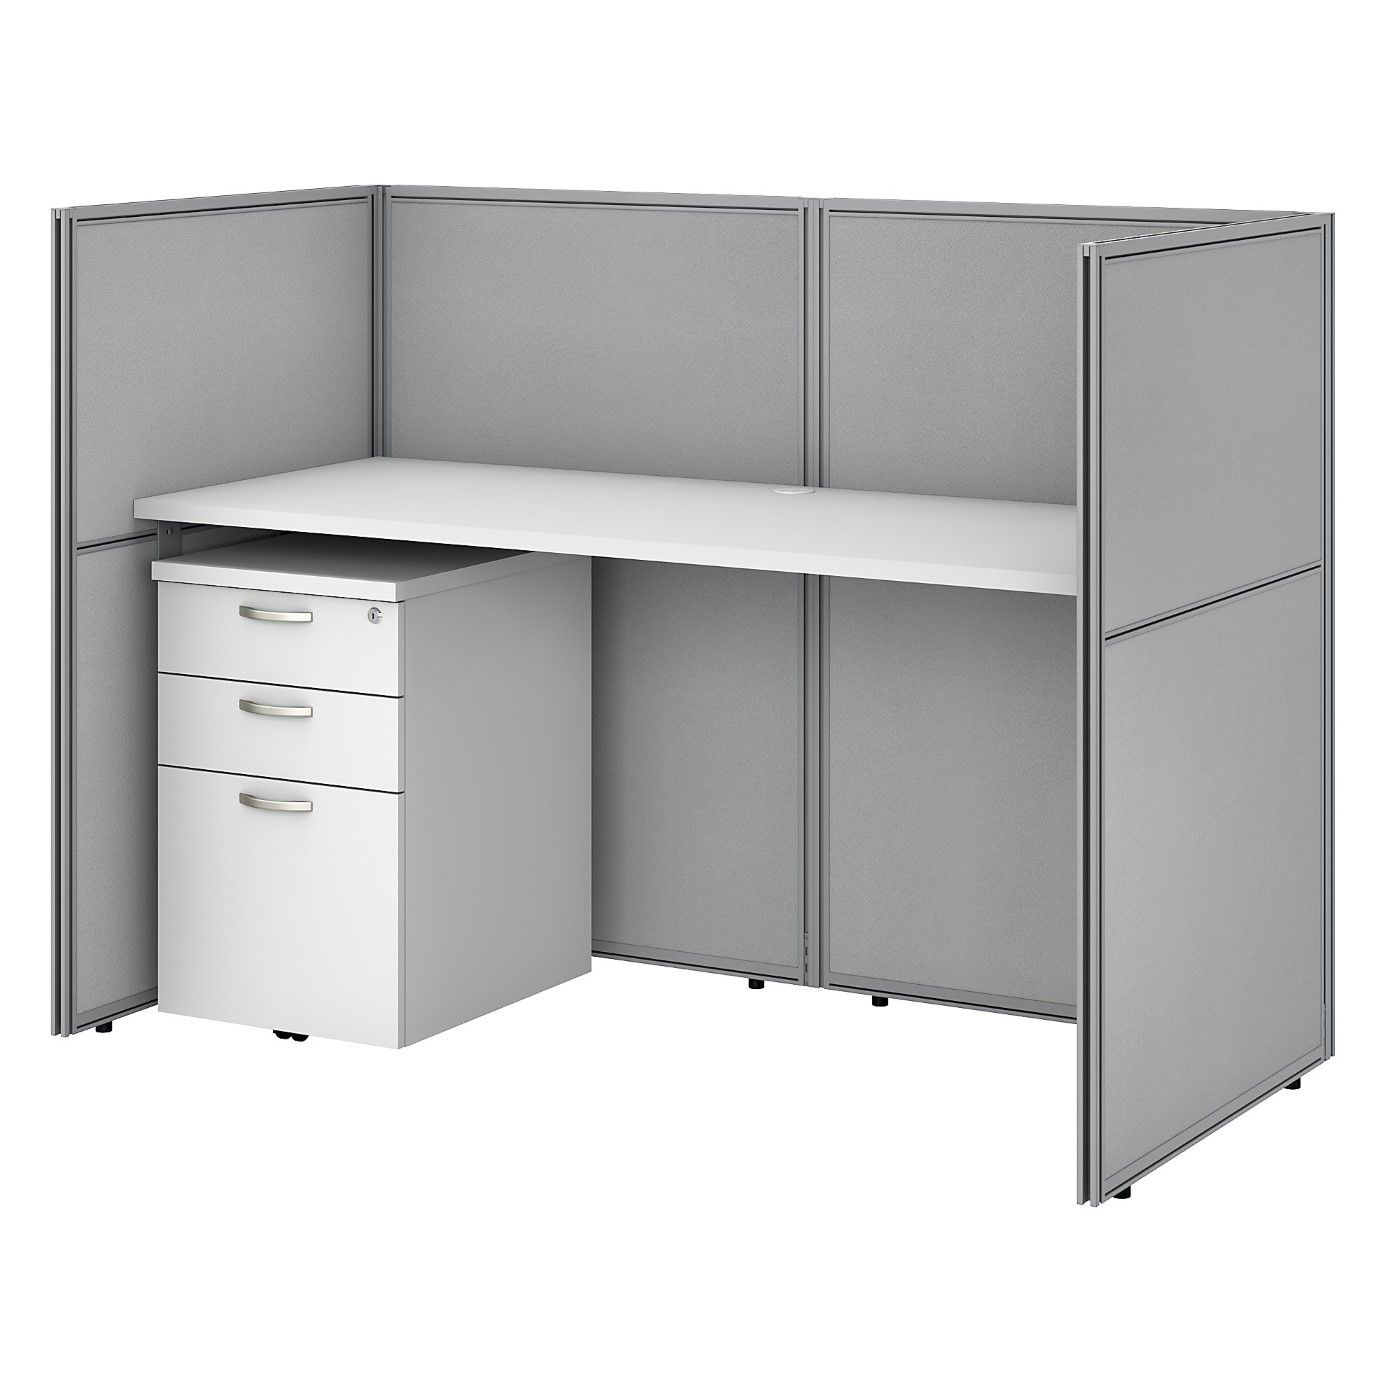 BUSH BUSINESS FURNITURE EASY OFFICE 60W CUBICLE DESK WITH FILE CABINET AND 45H CLOSED PANELS WORKSTATION. FREE SHIPPING SALE DEDUCT 10% MORE ENTER '10percent' IN COUPON CODE BOX WHILE CHECKING OUT. ENDS 5-31-20.